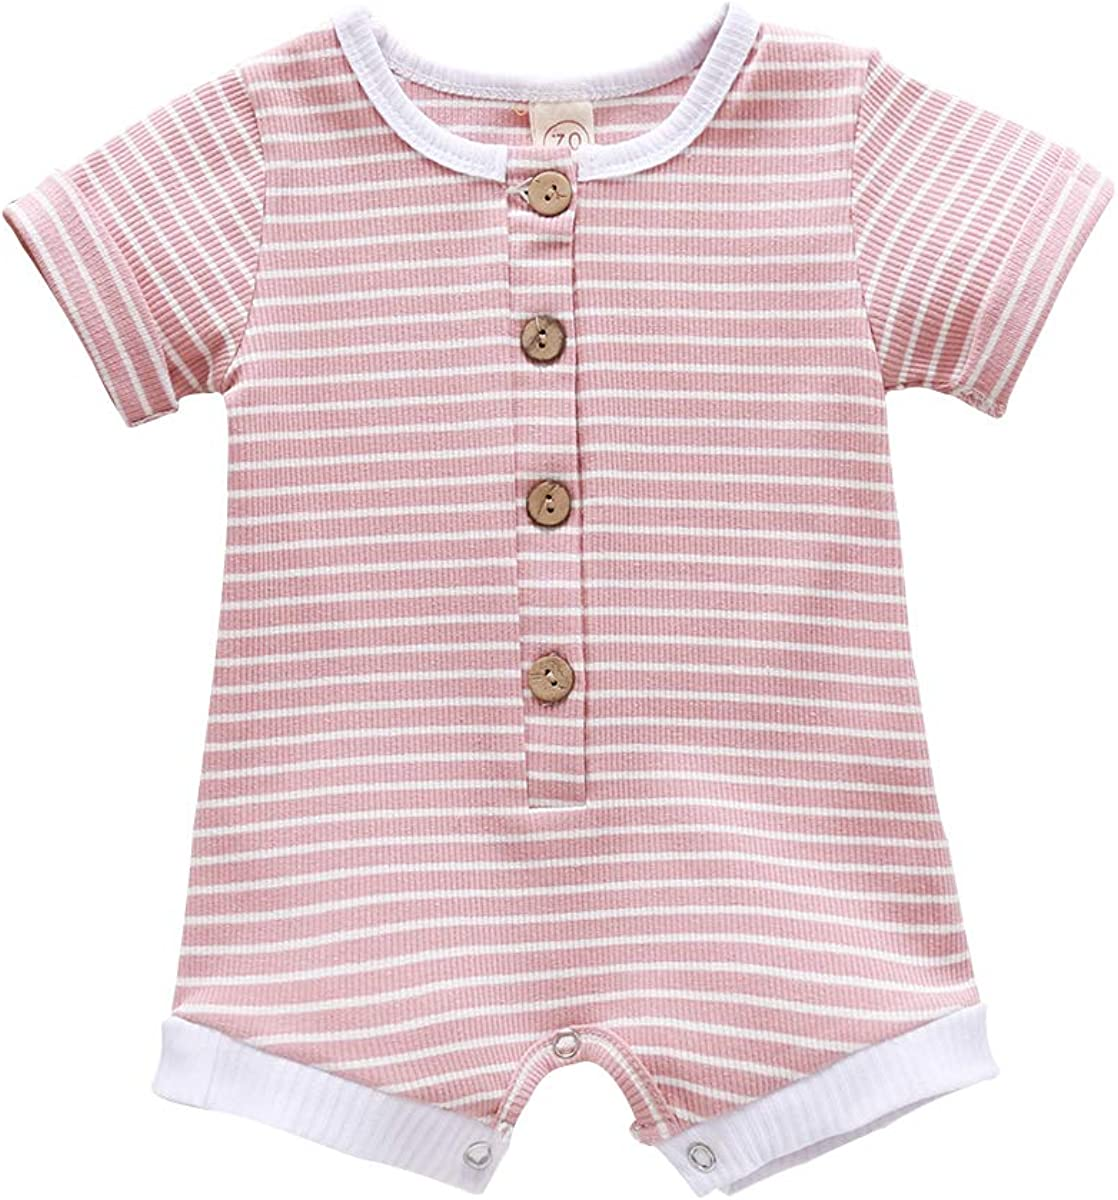 YOUNGER STAR Baby Boy Summer Clothes Ribbed Cotton Romper Shorts Set Newborn Boy Casual Jumpsuit Outfits